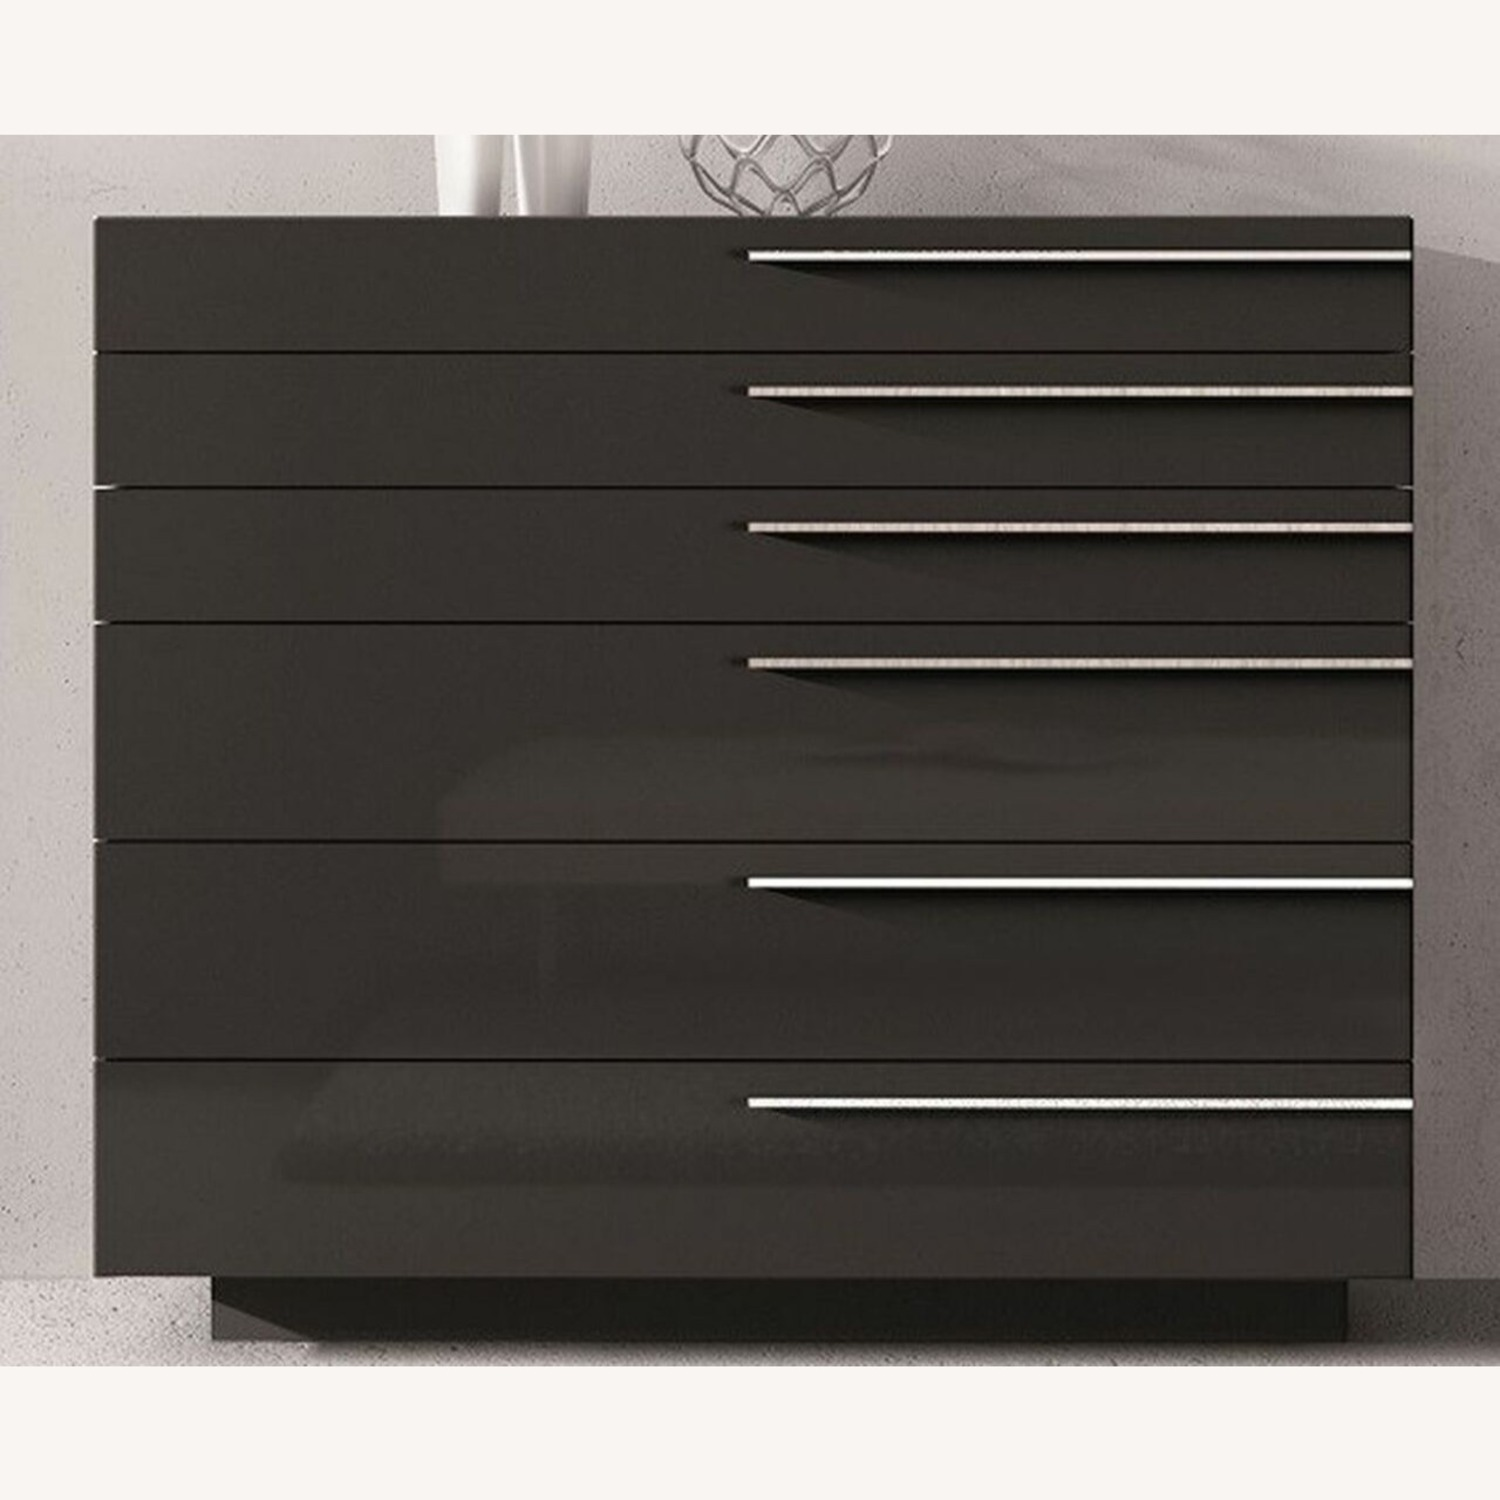 Chiffonier In Wood Veneers & Natural Lacquers - image-0